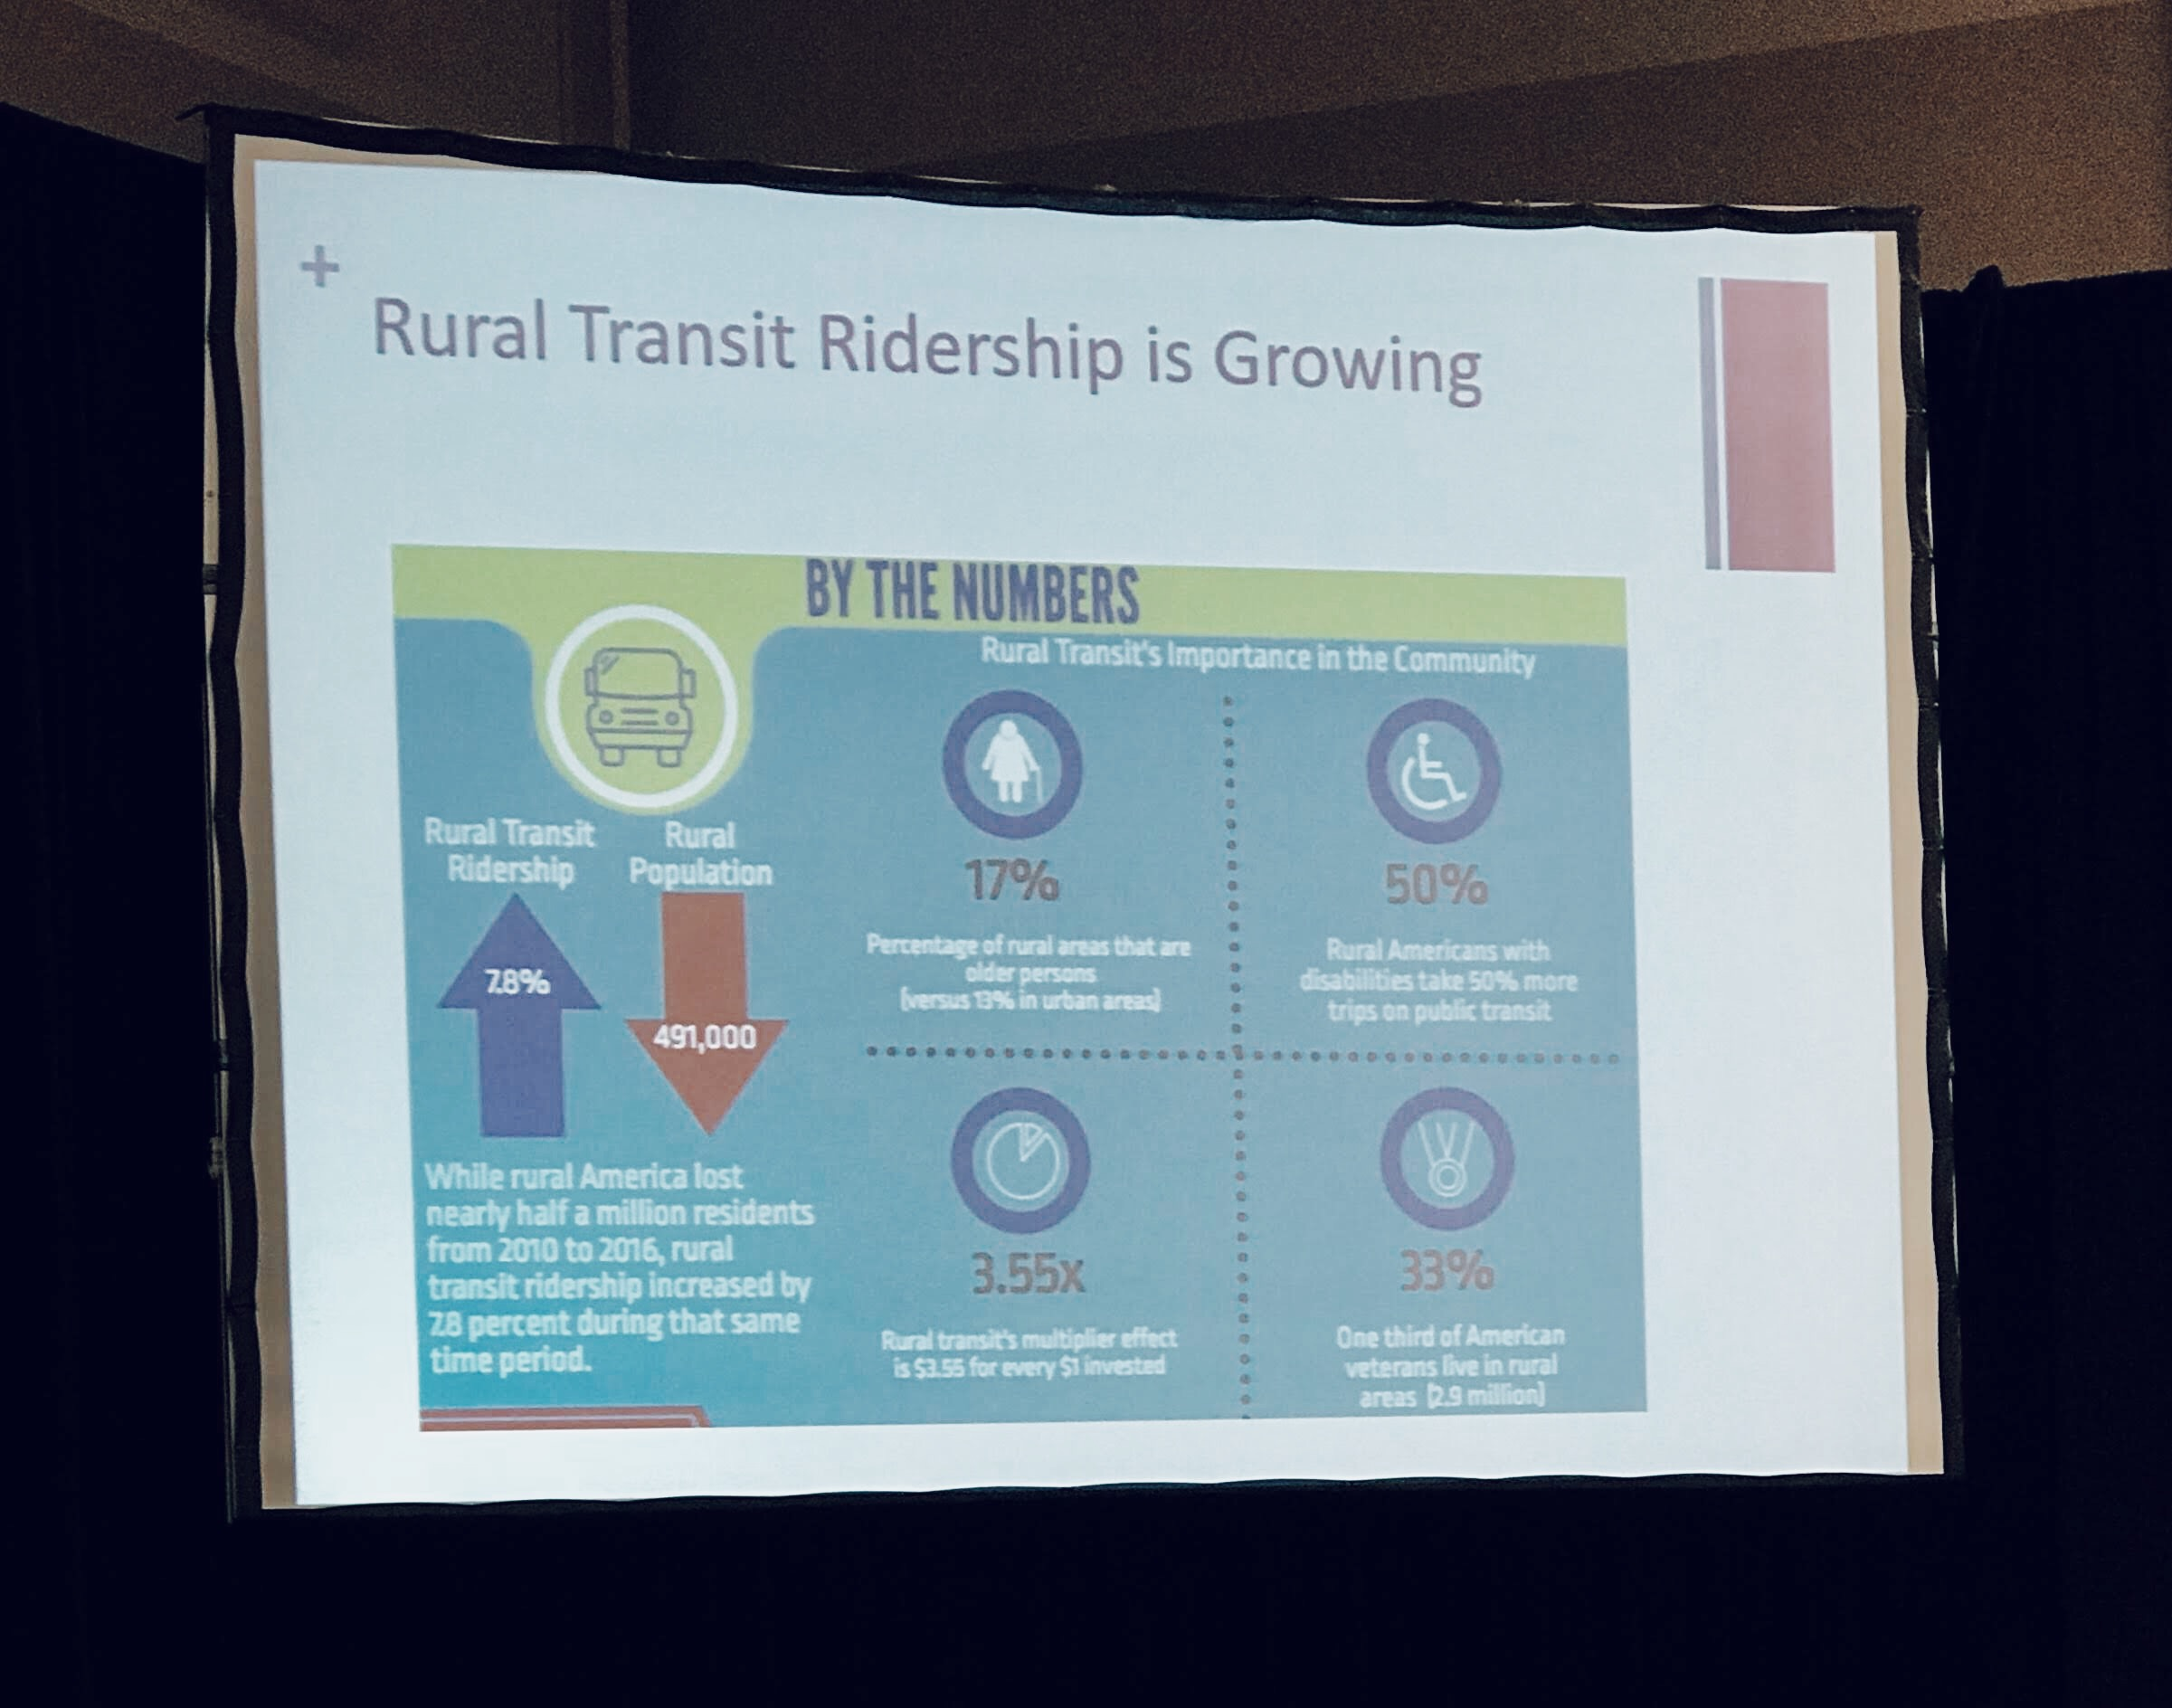 Rural transit usage continues to grow despite decline in rural population.